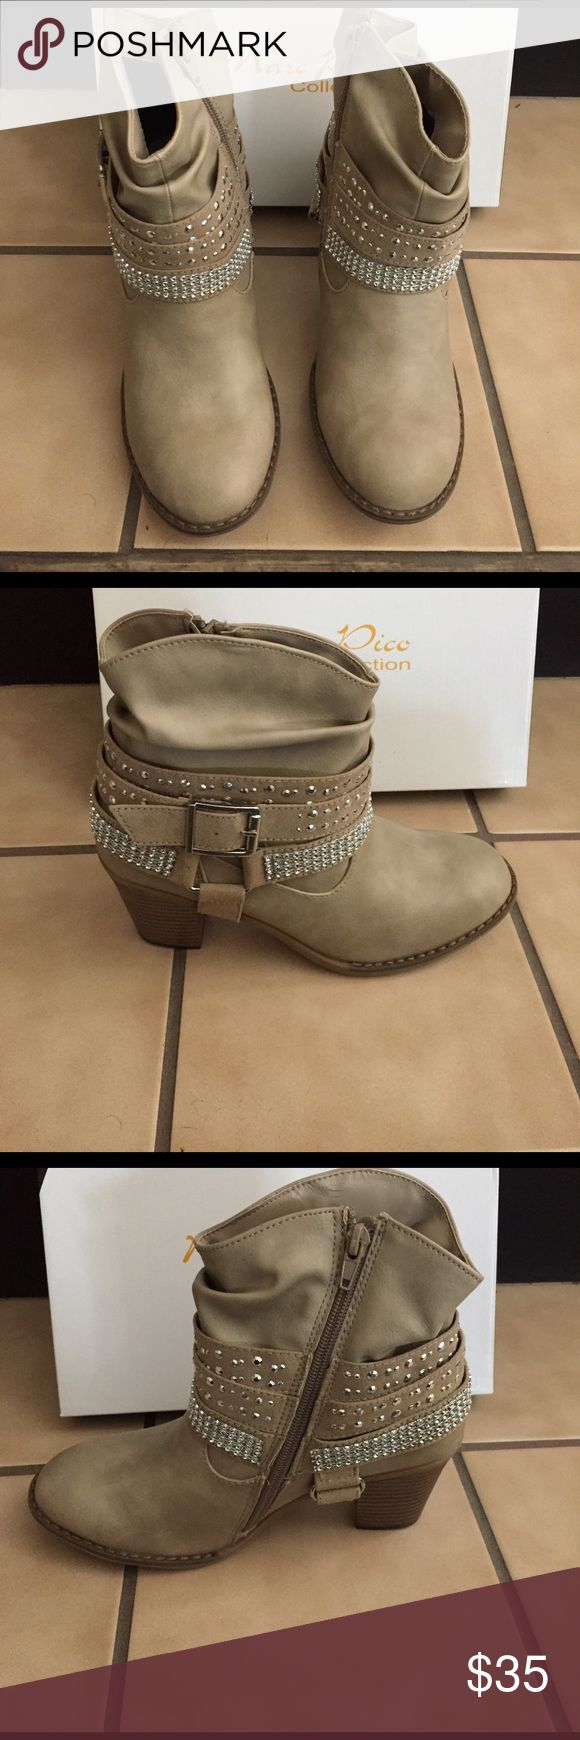 ⚡️flash sale⚡️Marc Pico Booties Step out in style in these High-Heel Rhinestone Harness Booties from the Marc Pico Collection. Easy to wear all day thanks to comfort linings. An inside zipper makes them a breeze to slip on or off. Shaft height: 4.4 in. Heel height: 1.5 in.Marc pico booties in the color sand. Cute boots with rhinestones, beautifully detailed. New, never worn. For the southern girl in you. Pair these booties with shorts, short dress, or skinny jeans. So many ways to wear these…